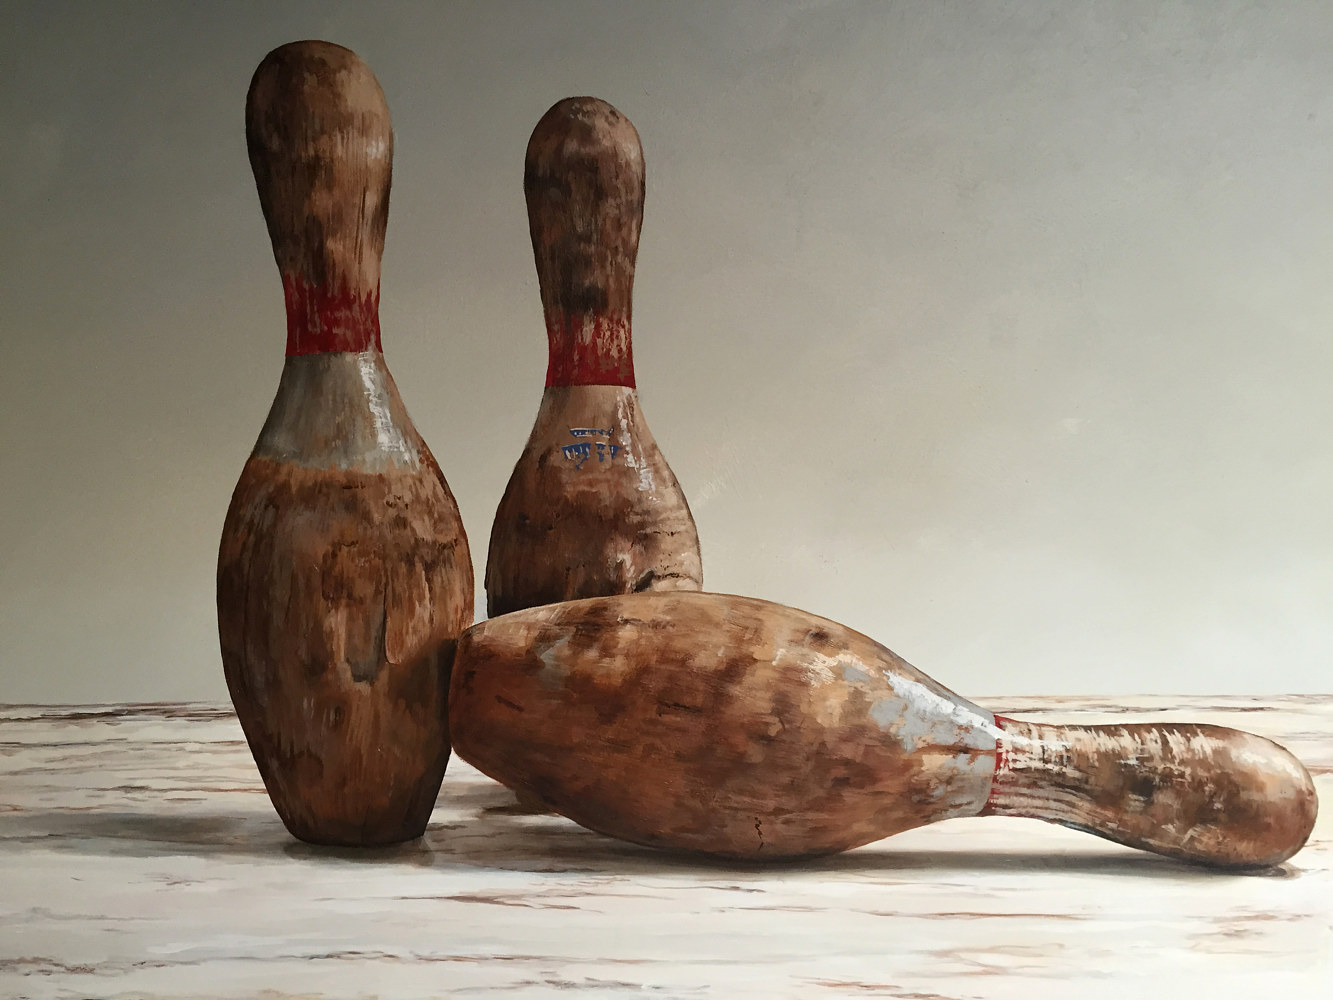 Bowling Pins by Robert Milling